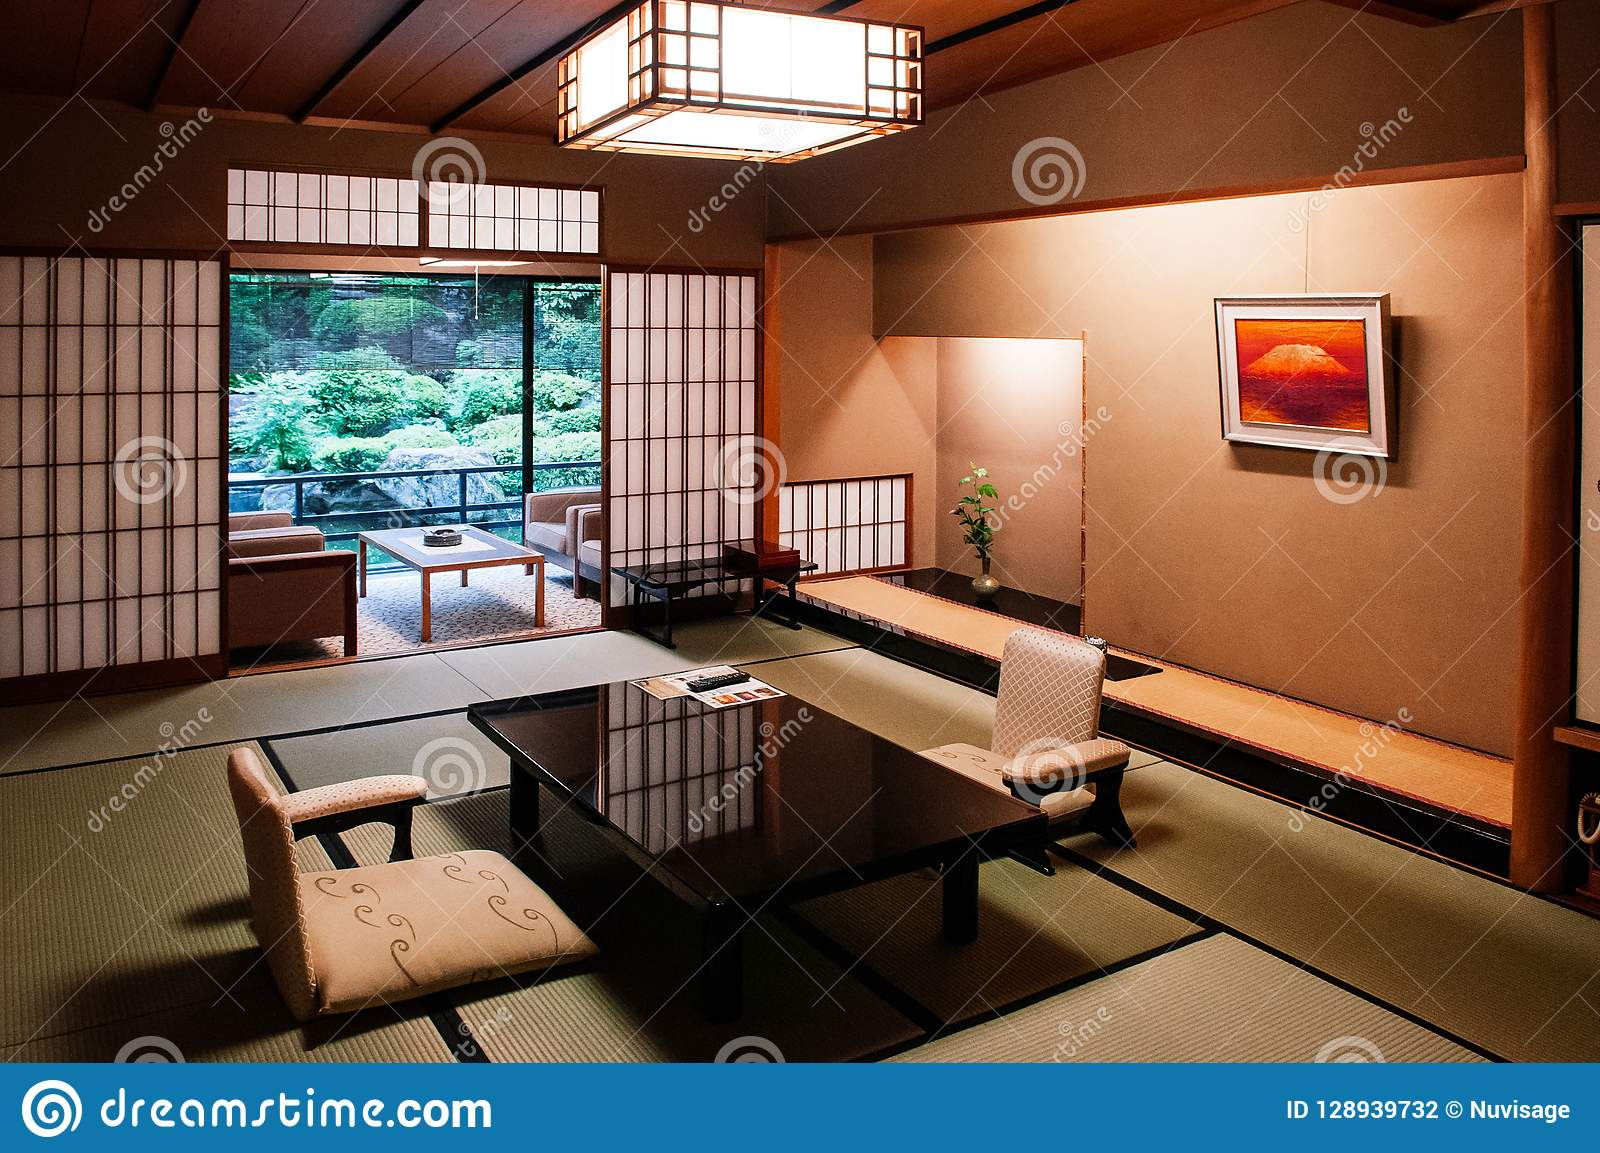 Tatami Matten Traditional Japanese Living Room Tatami Mat Floor Wood Table And